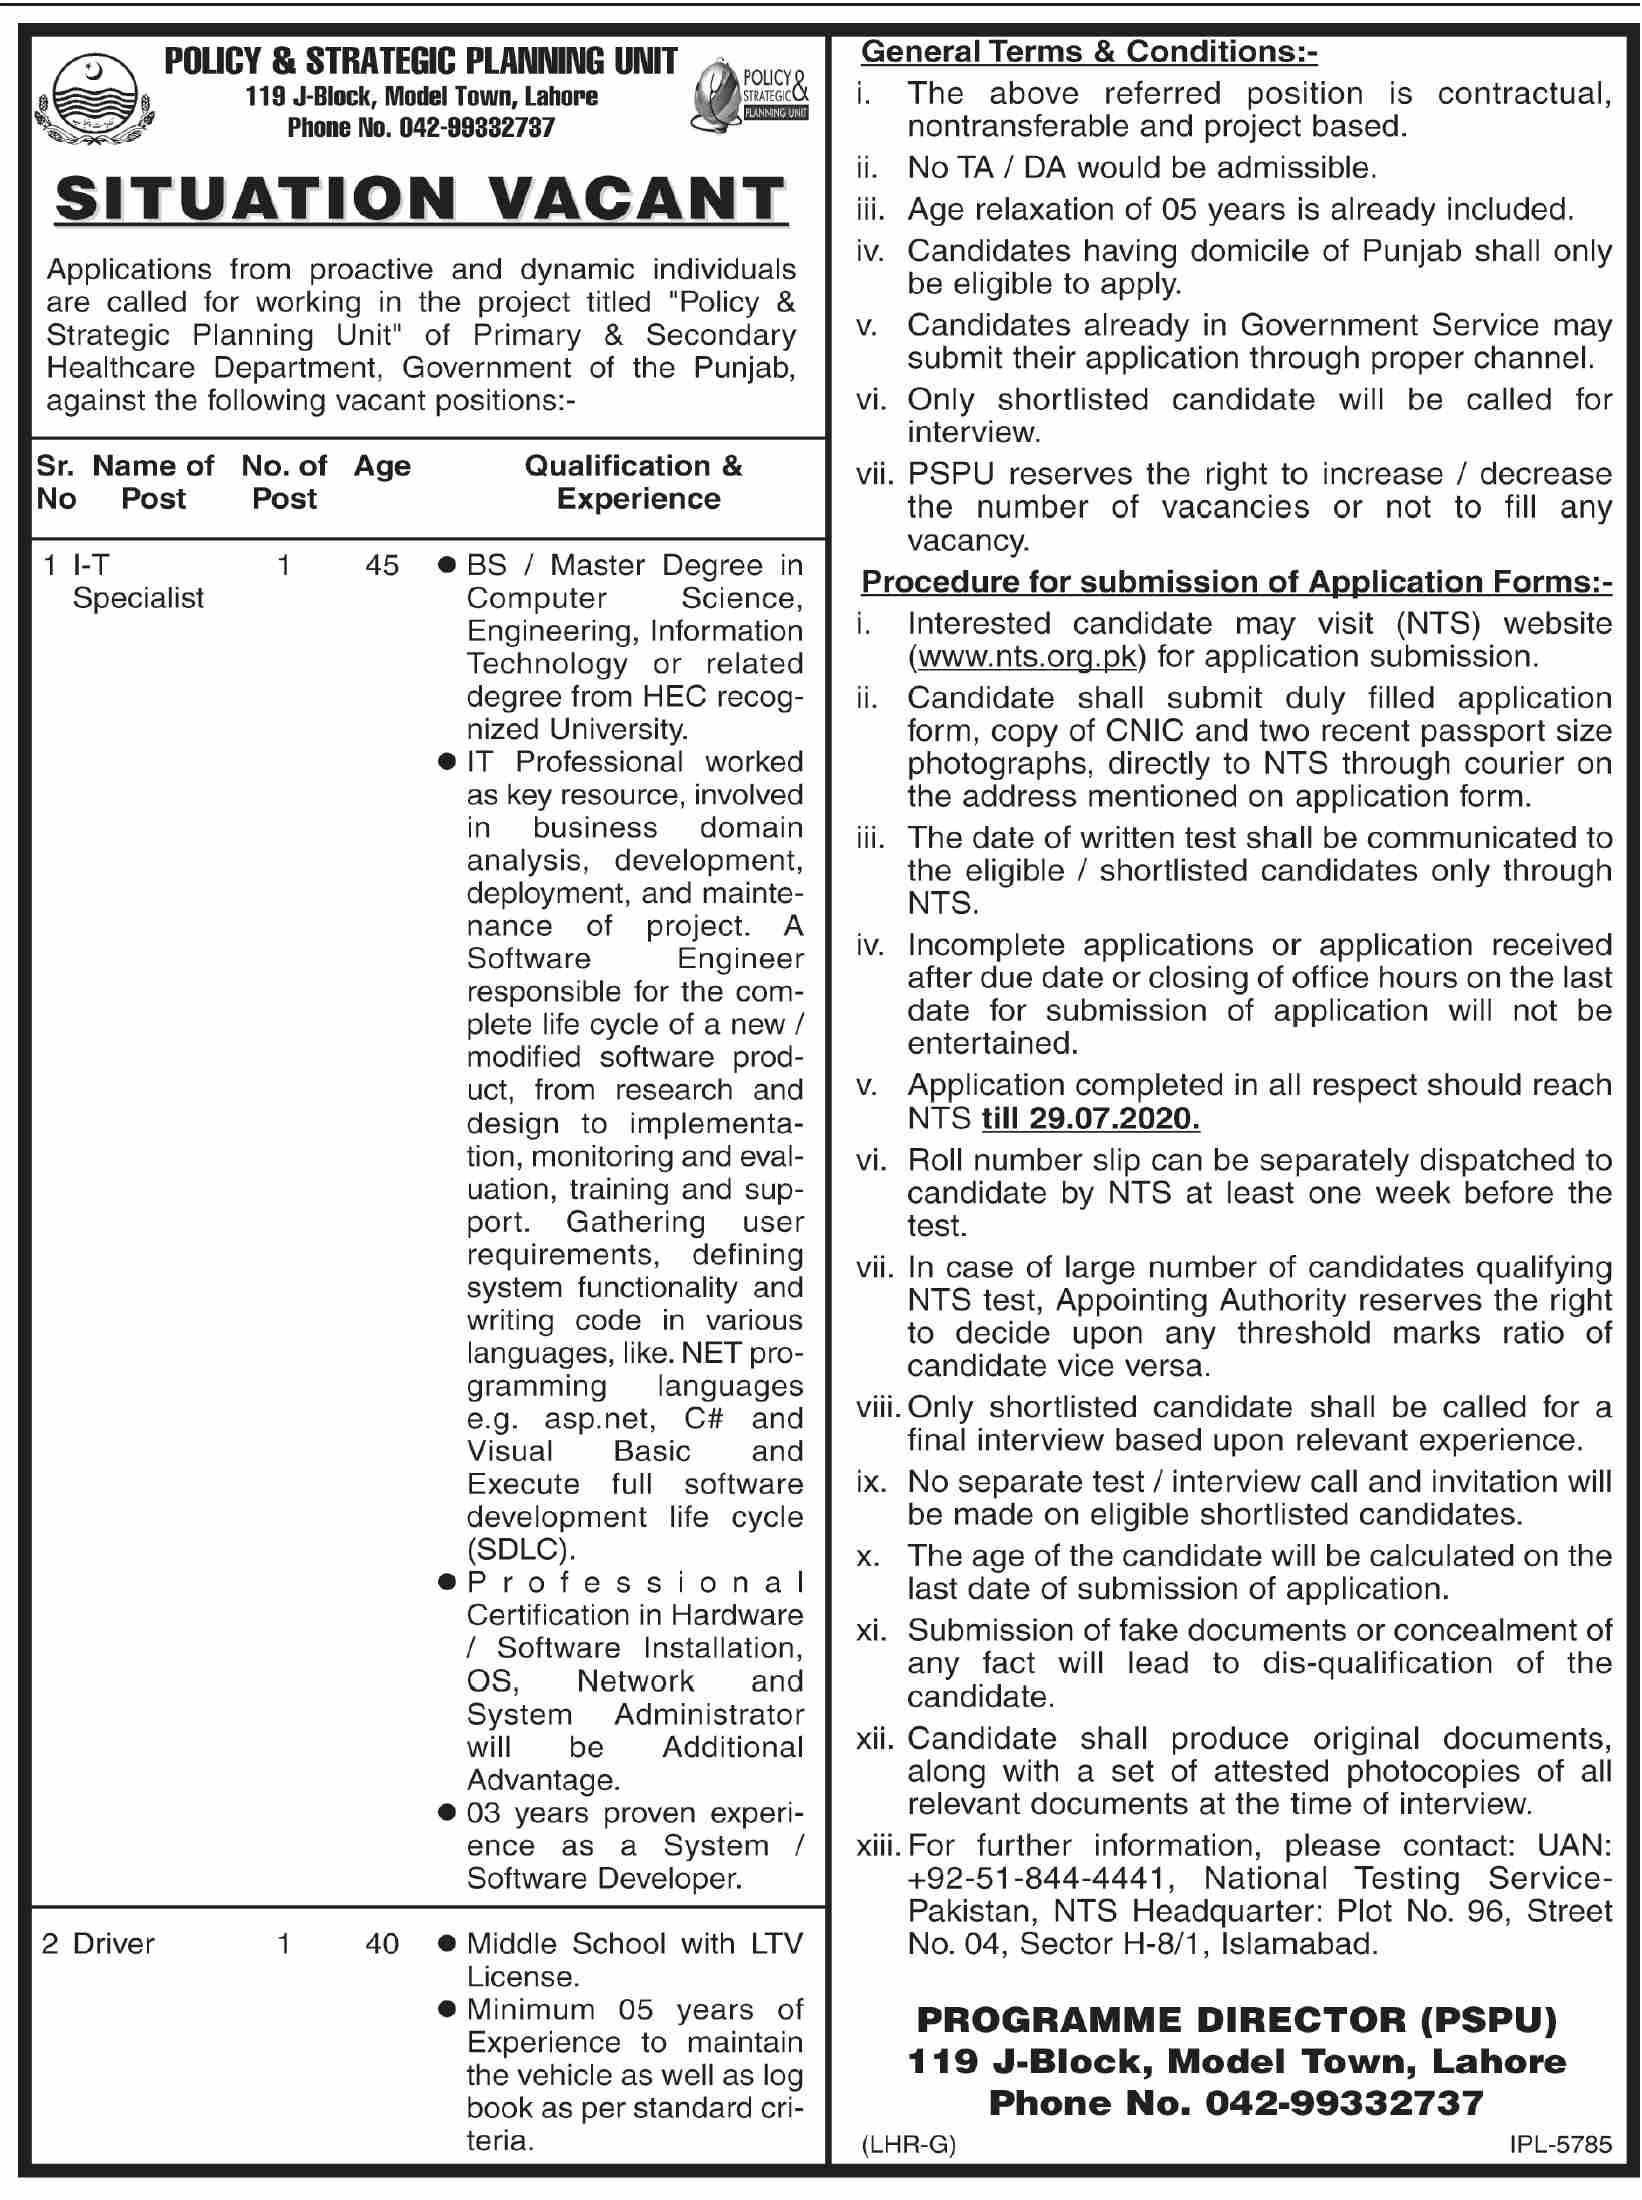 PSPU Primary Secondary Healthcare Department Jobs NTS Roll No Slip